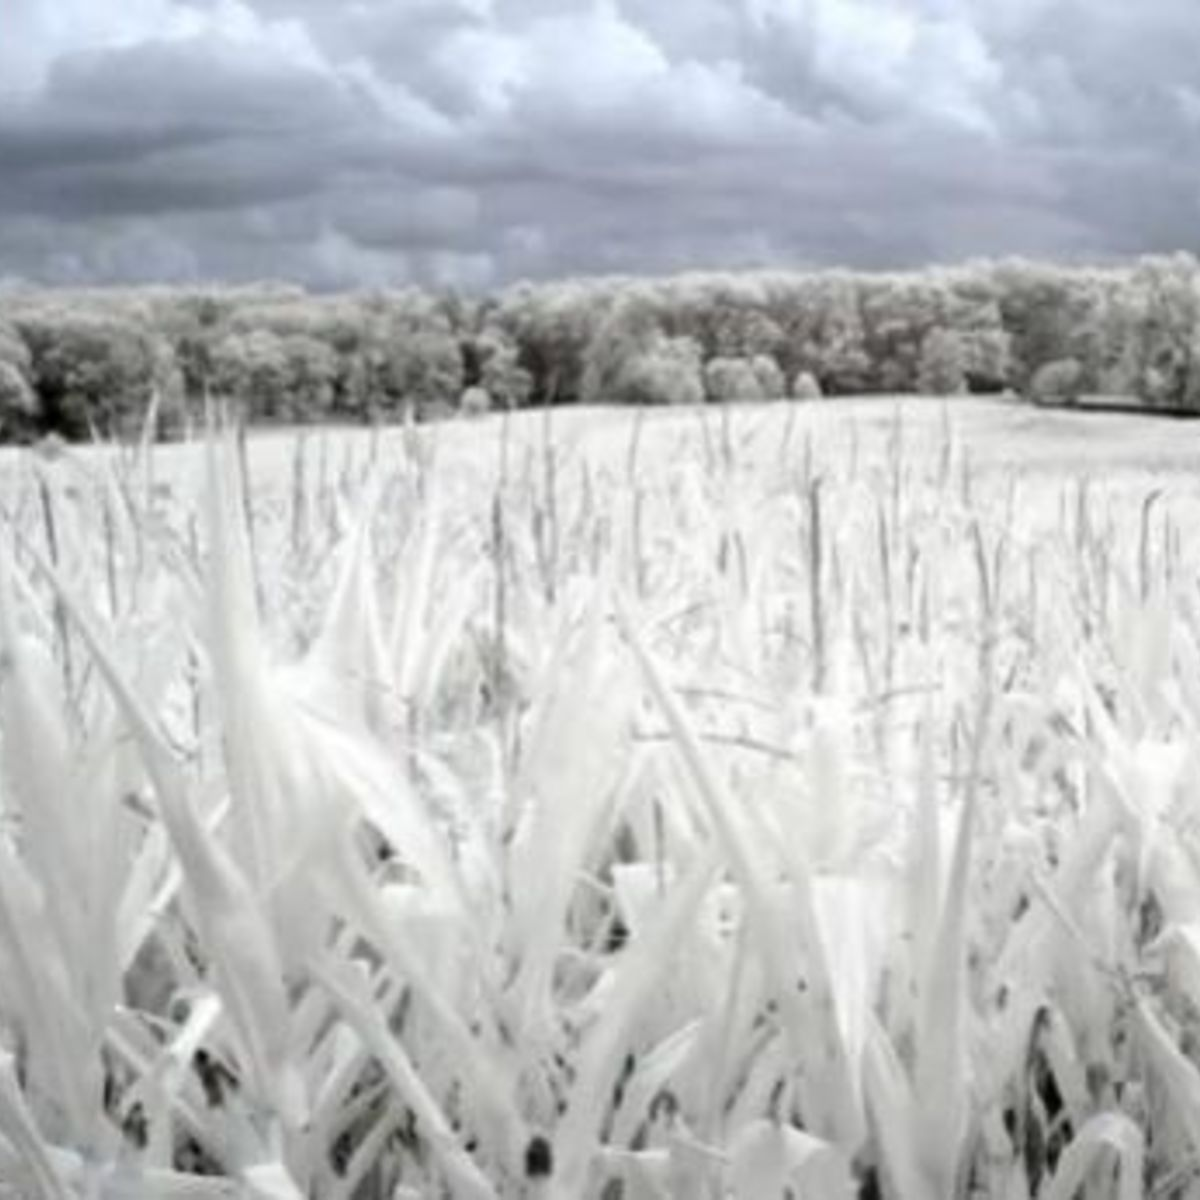 ir_cornstalks_hurtleff1341900348.jpg.CROP.rectangle-large.jpg